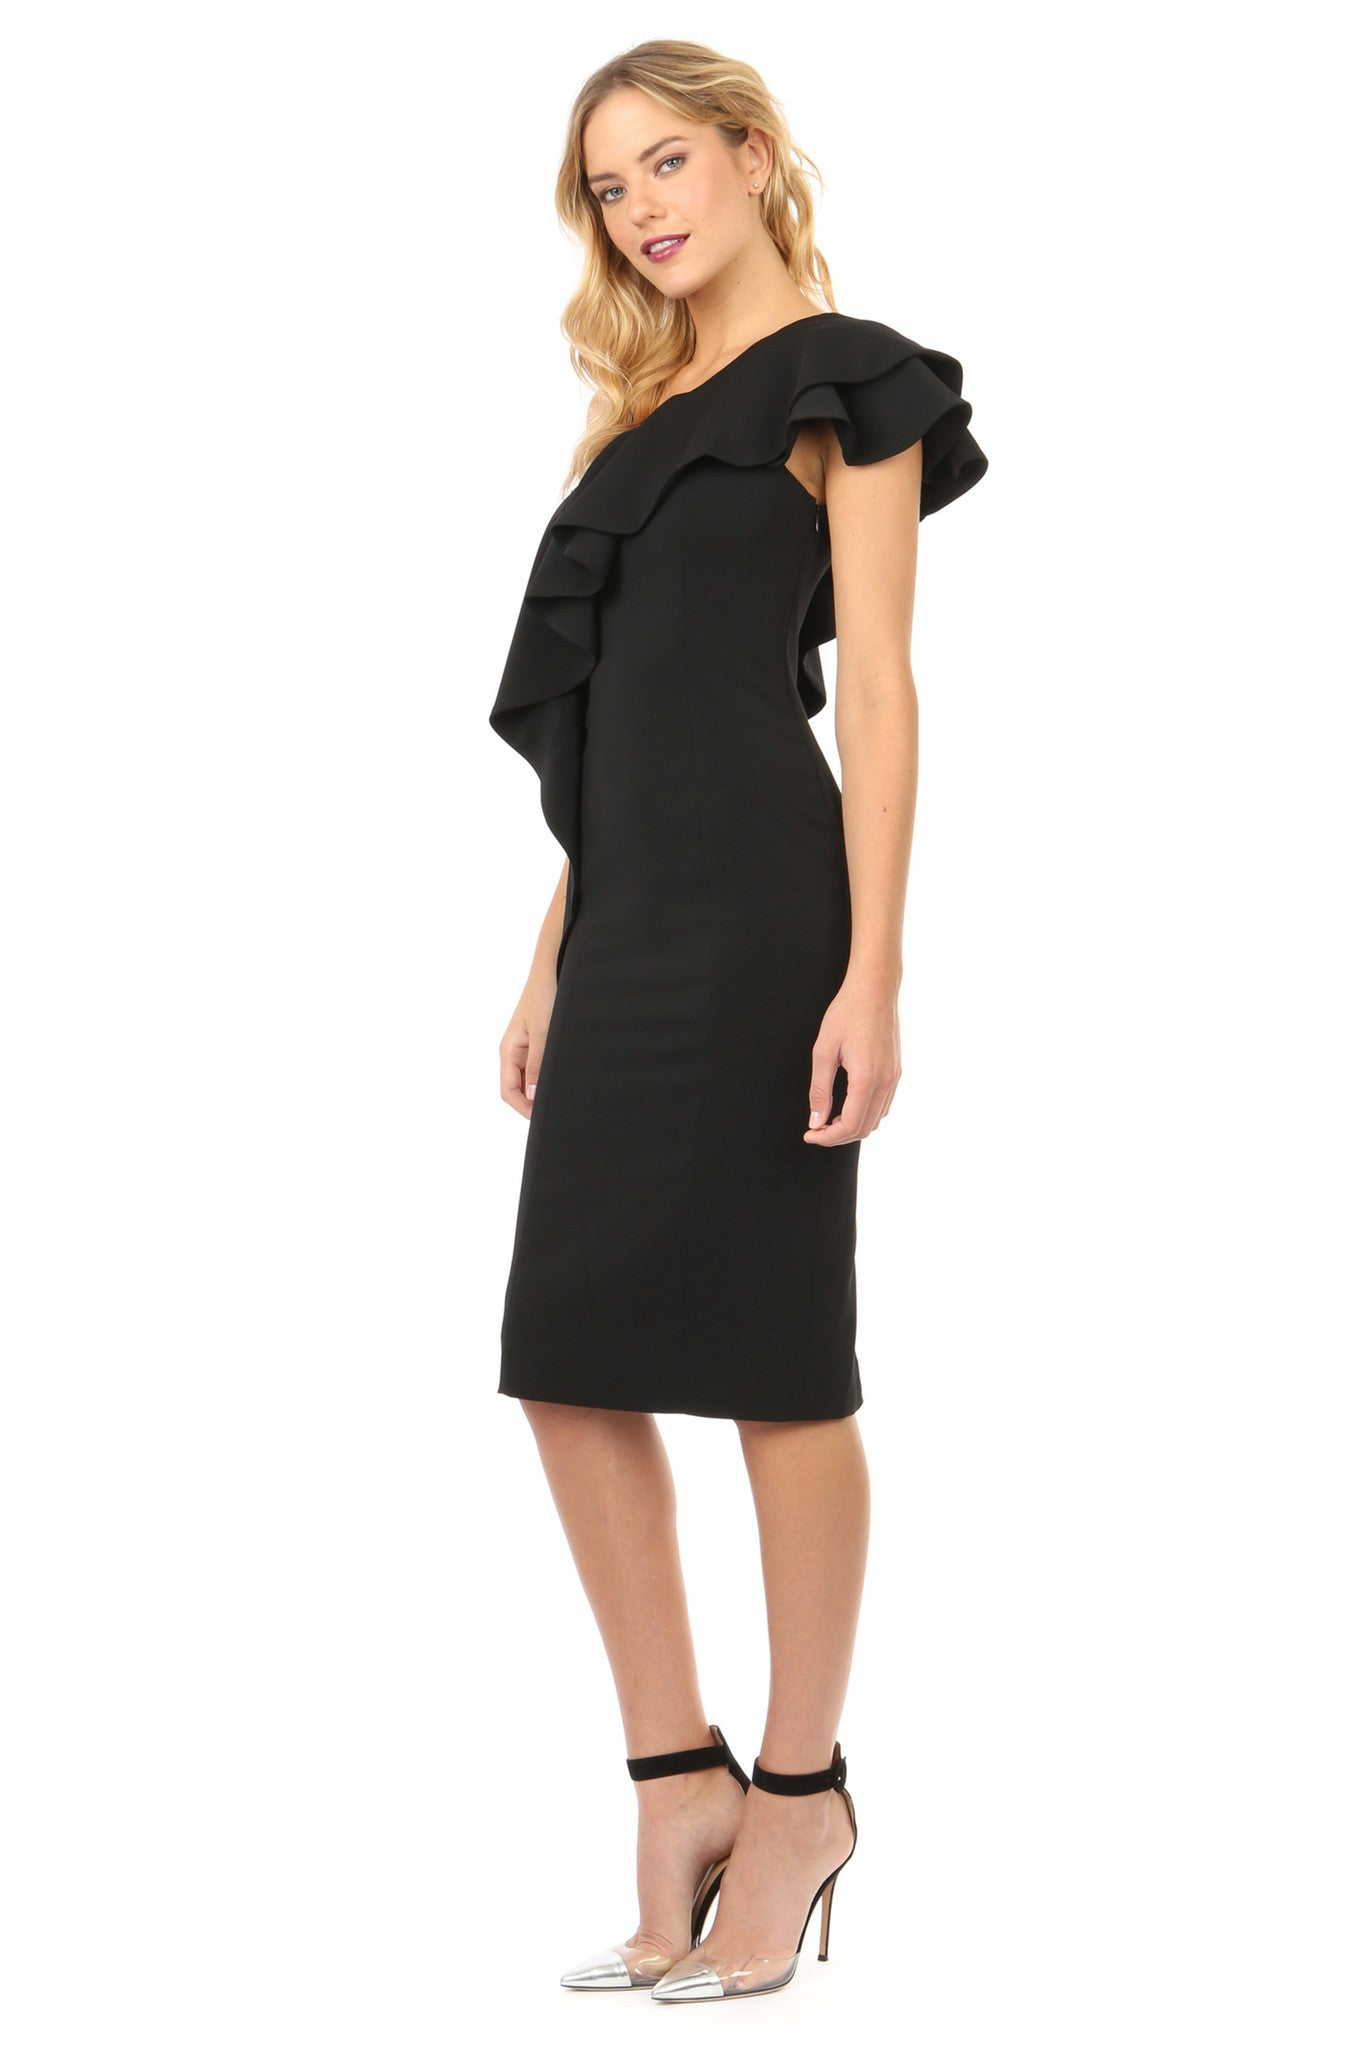 Jay Godfrey Black Ruffle One Shoulder Dress - Side View